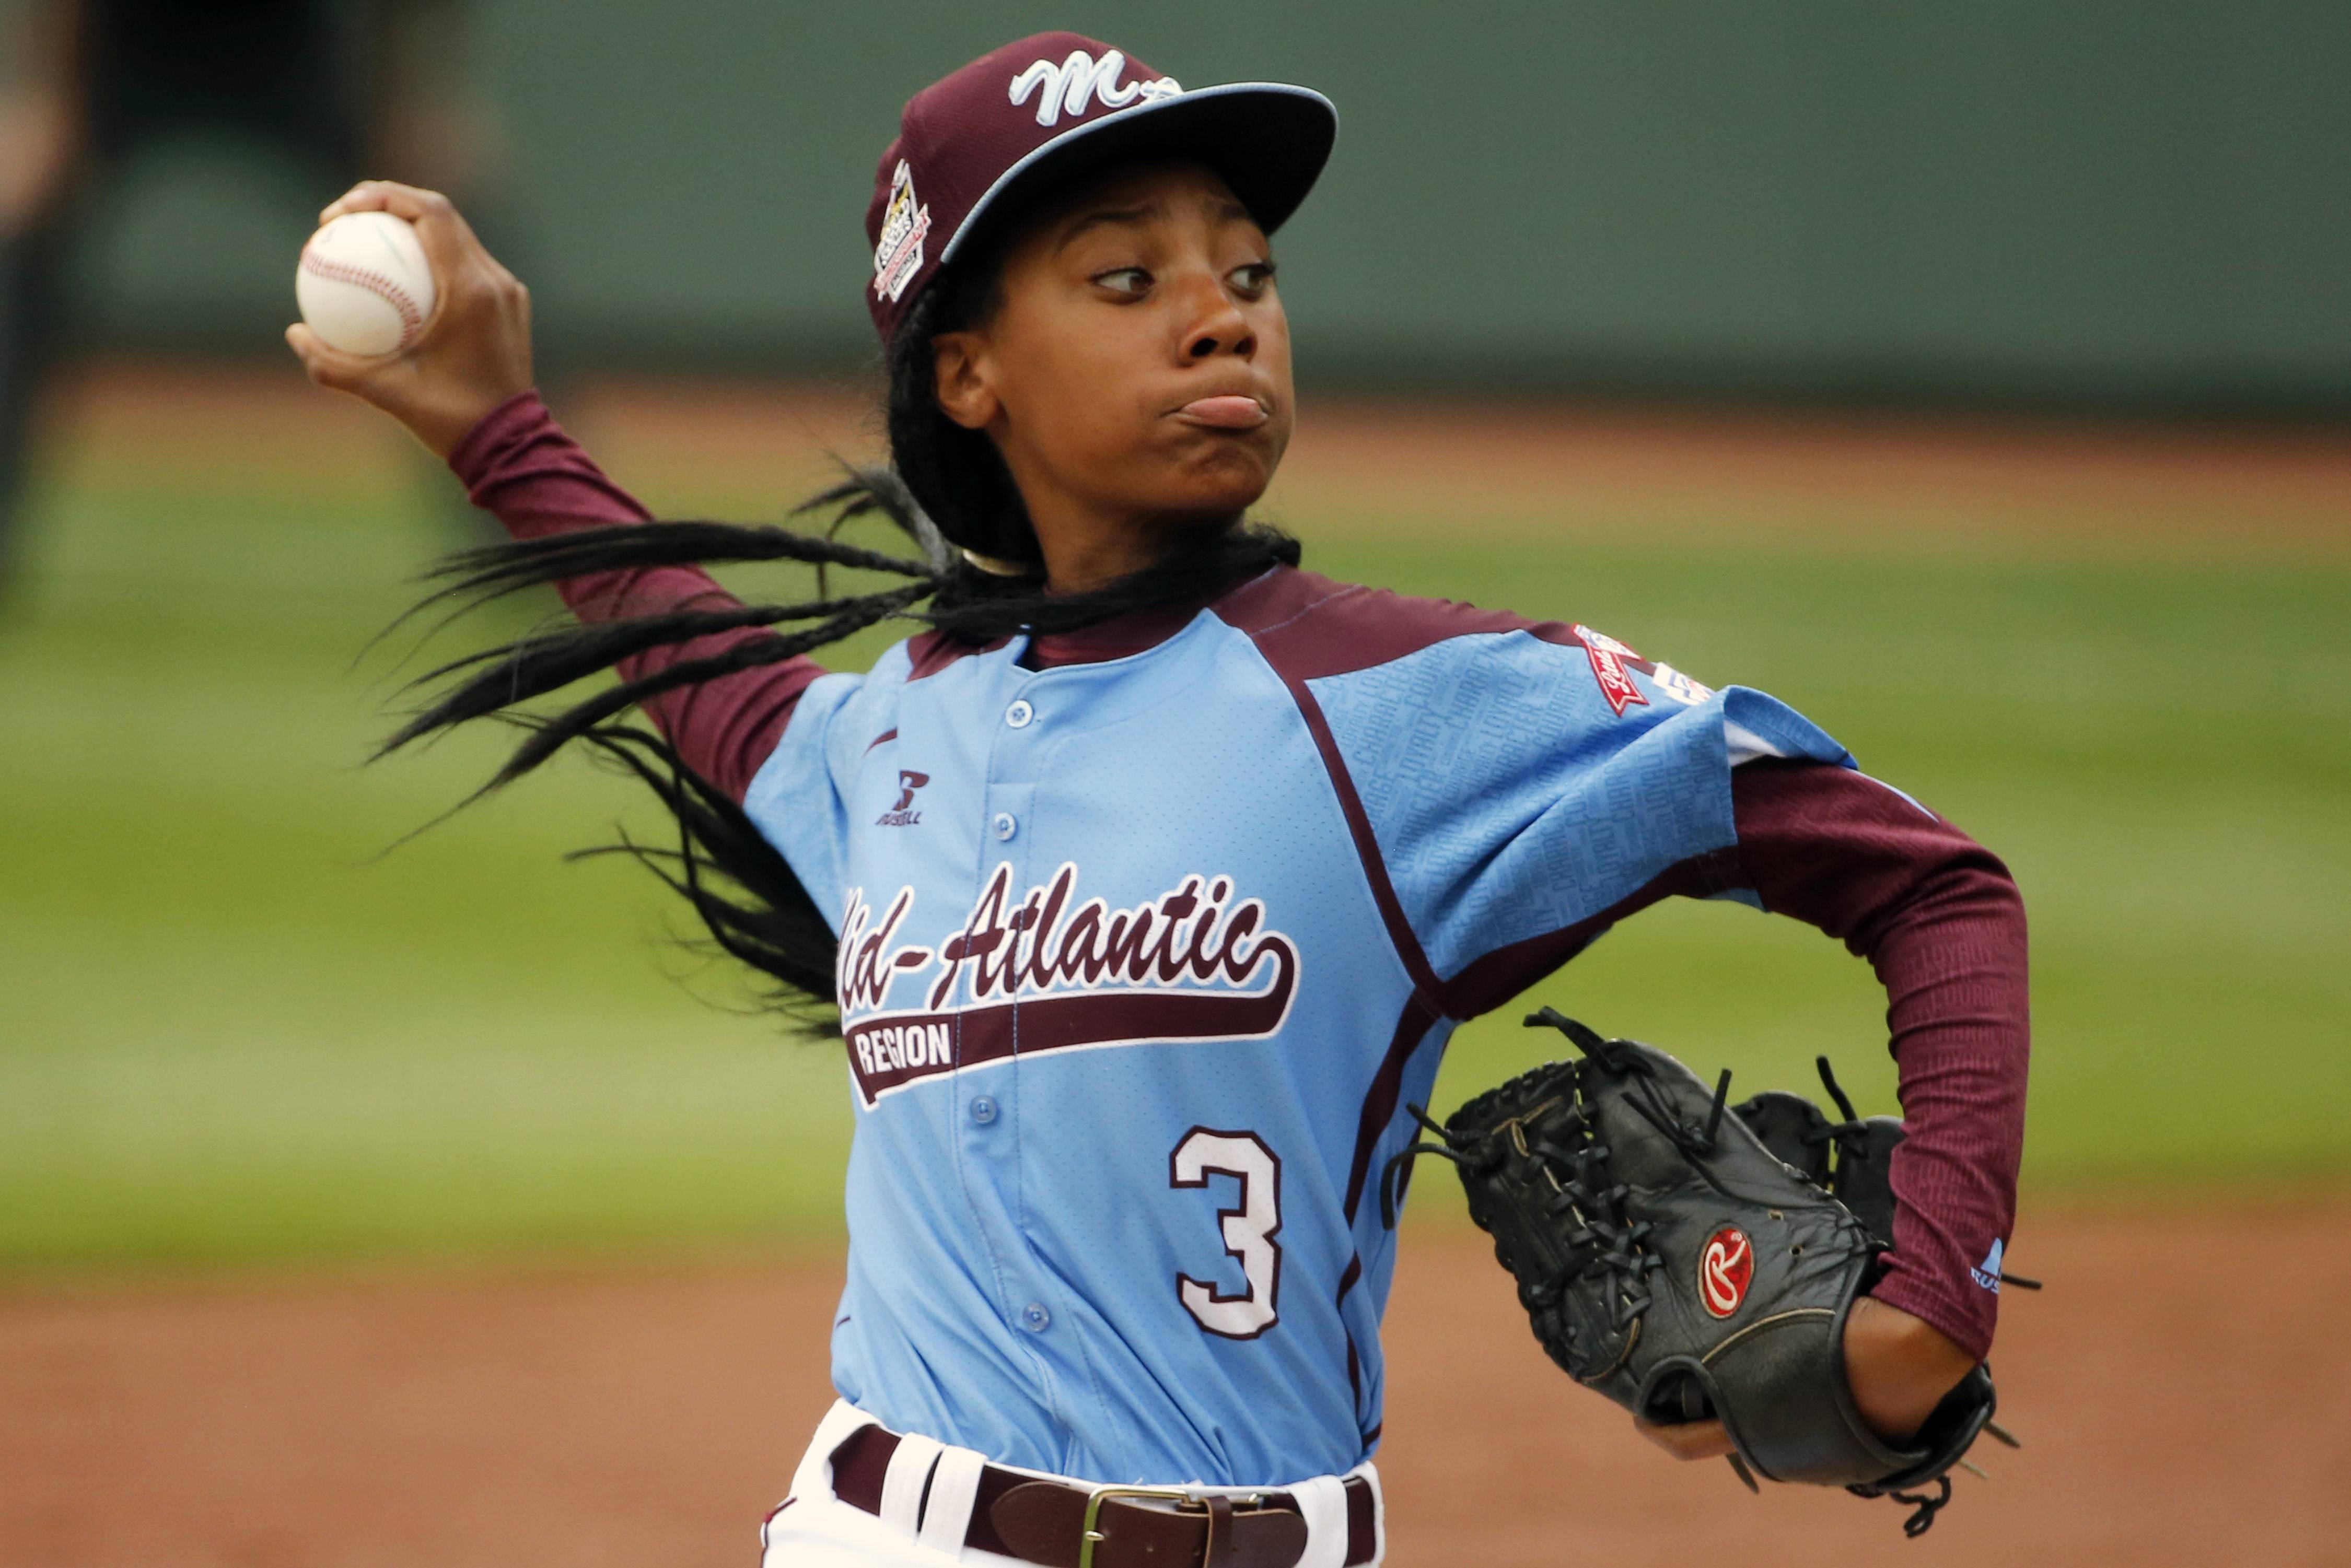 Pennsylvania's  Mo'ne Davis pitched a shutout last Friday for her team at the Little League World Series tournament in South Williamsport, Pa. Davis is expected to start Wednesday as the Taney team tries to reach the semifinals.